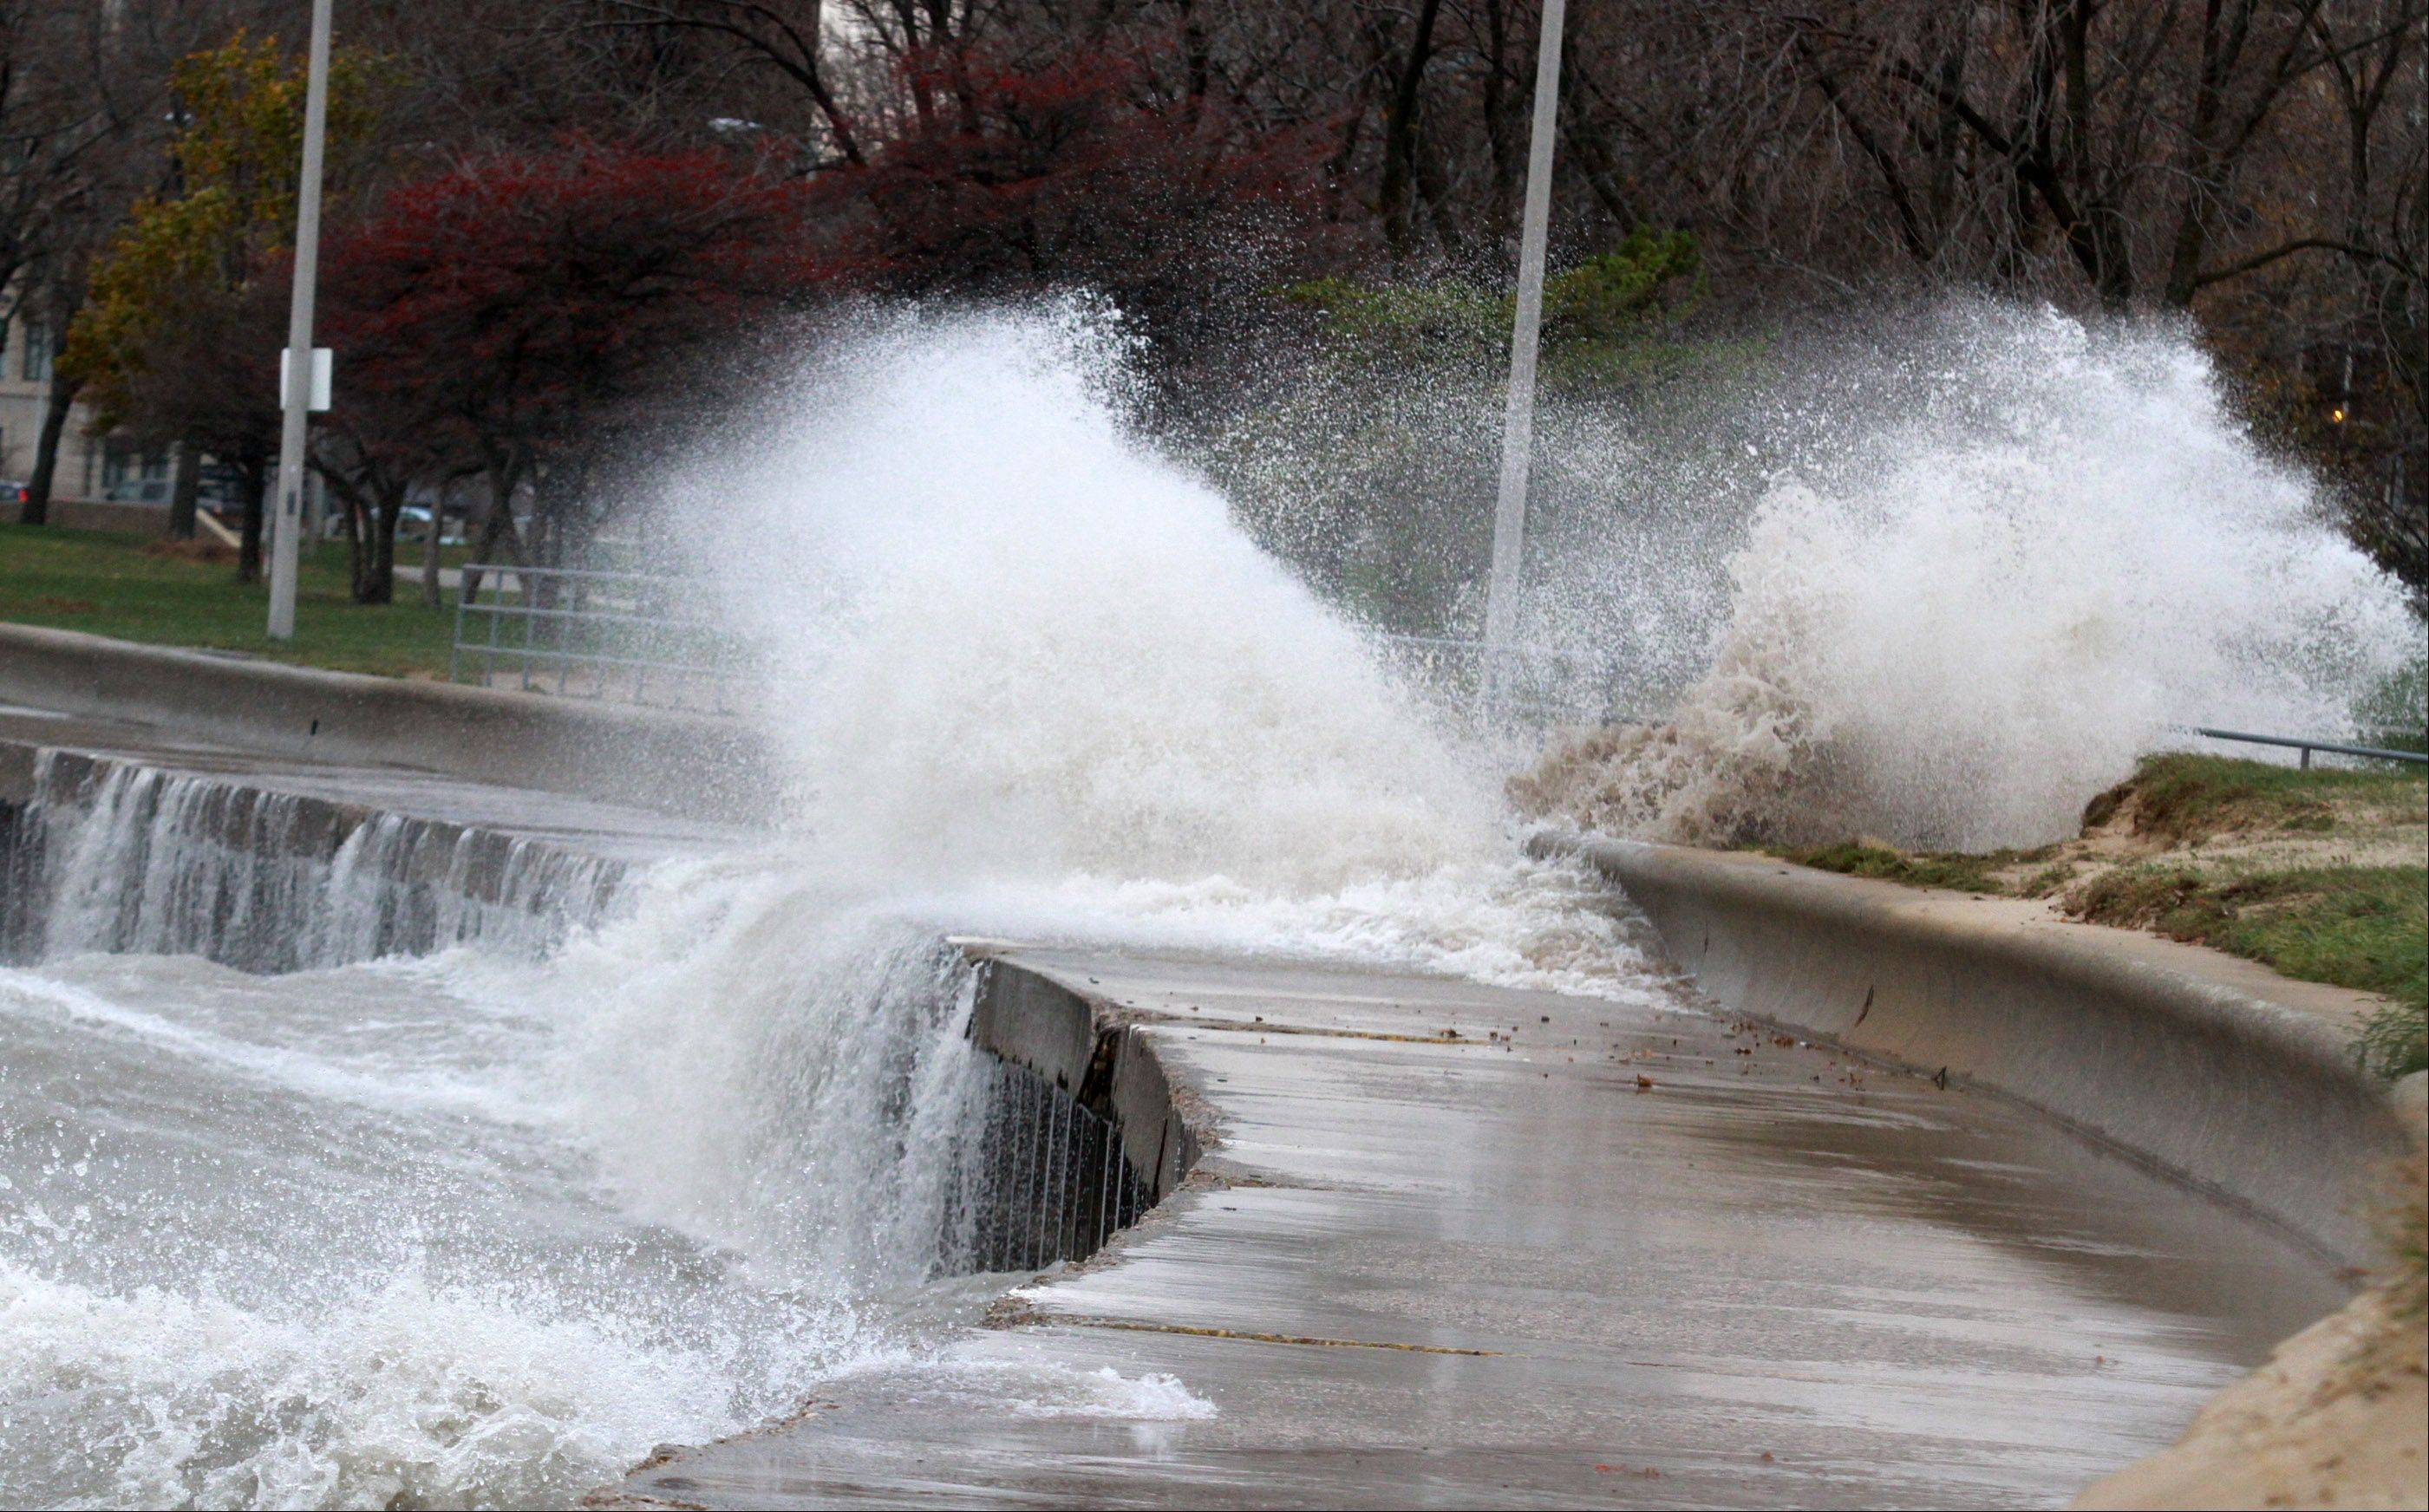 A large waves crashes of the jogging path at Montrose Beach in Chicago on Tuesday, October 30.